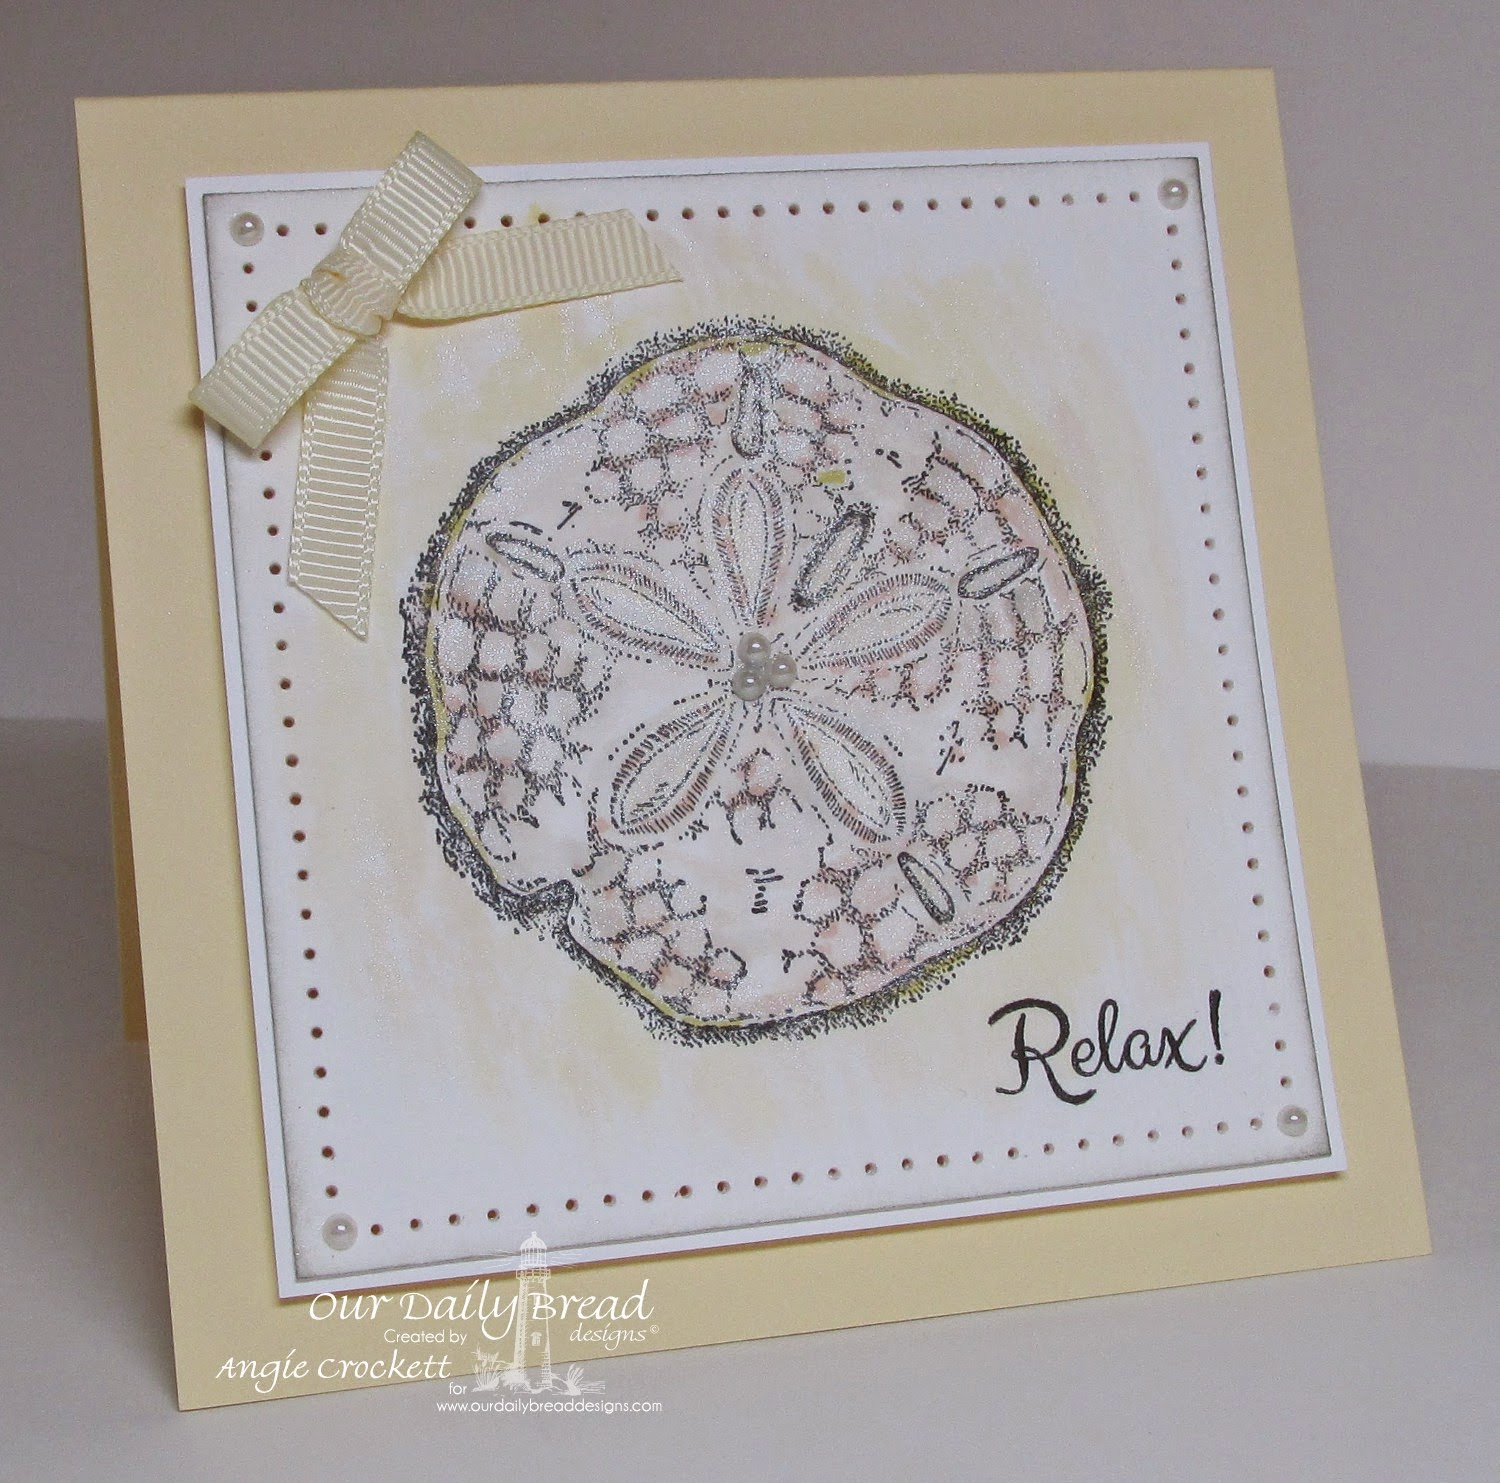 ODBD Ocean Treasures, Flip Flop Fun, Card Designer Angie Crockett